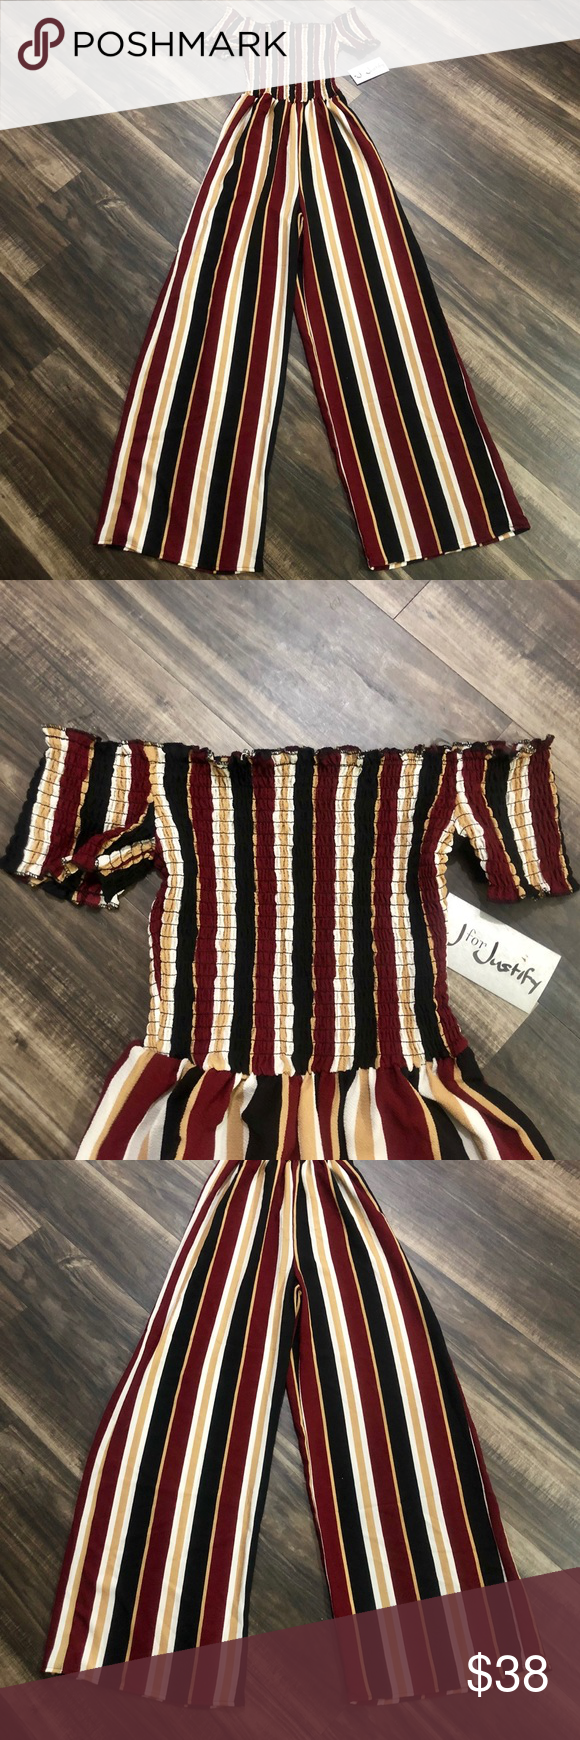 45621c5f24e BNWT J for Justify Off Shoulder Strapless Jumpsuit Brand New Authentic J  for Justify Clothing Fitted